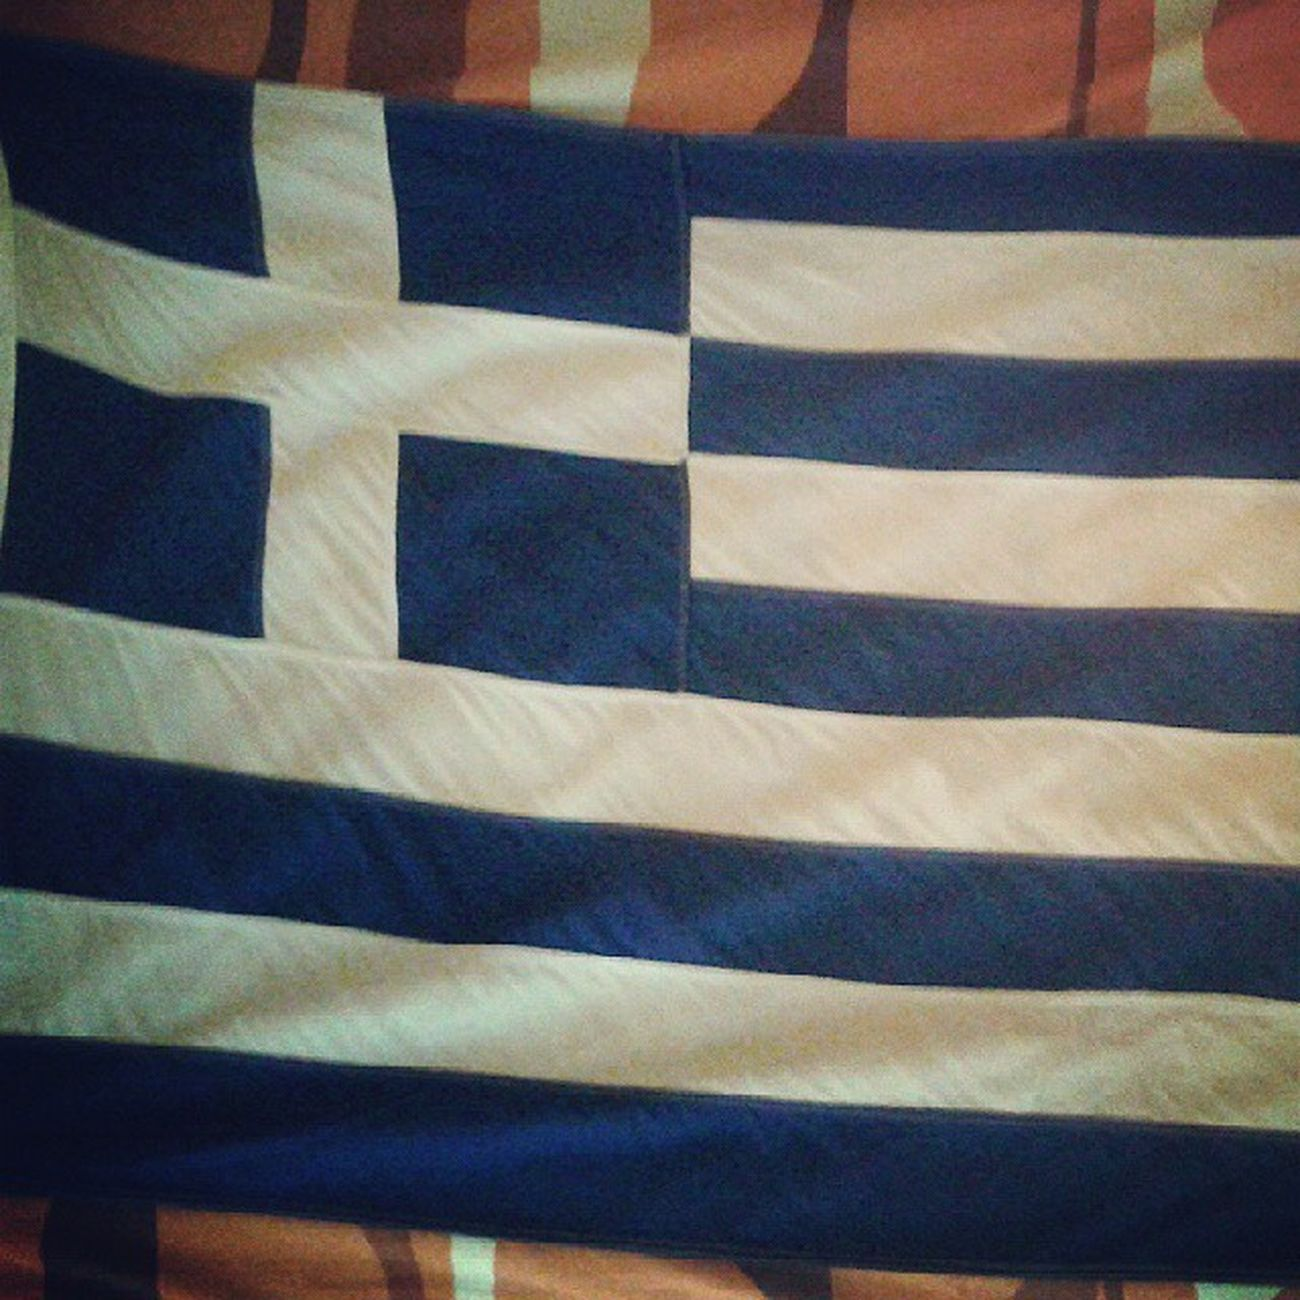 """Today in my country we celebrate """"the Ohi Day"""". Ohi Day (also spelled Ochi Day , Greek: Επέτειος του «'Οχι» Epeteios tou """"'Ohi"""" , Anniversary of the """"No"""") is celebrated throughout Greece, Cyprus and the Greek communities around the world on October 28 each year, to commemorate the rejection by Greek Prime Minister Ioannis Metaxas (in power from August 4, 1936, until January 29, 1941) of the ultimatum made by Italian dictator Benito Mussolini on October 28, 1940. Greece Ellada  Ohi Italy albania octomber new war 1940 fight photooftheday history past"""